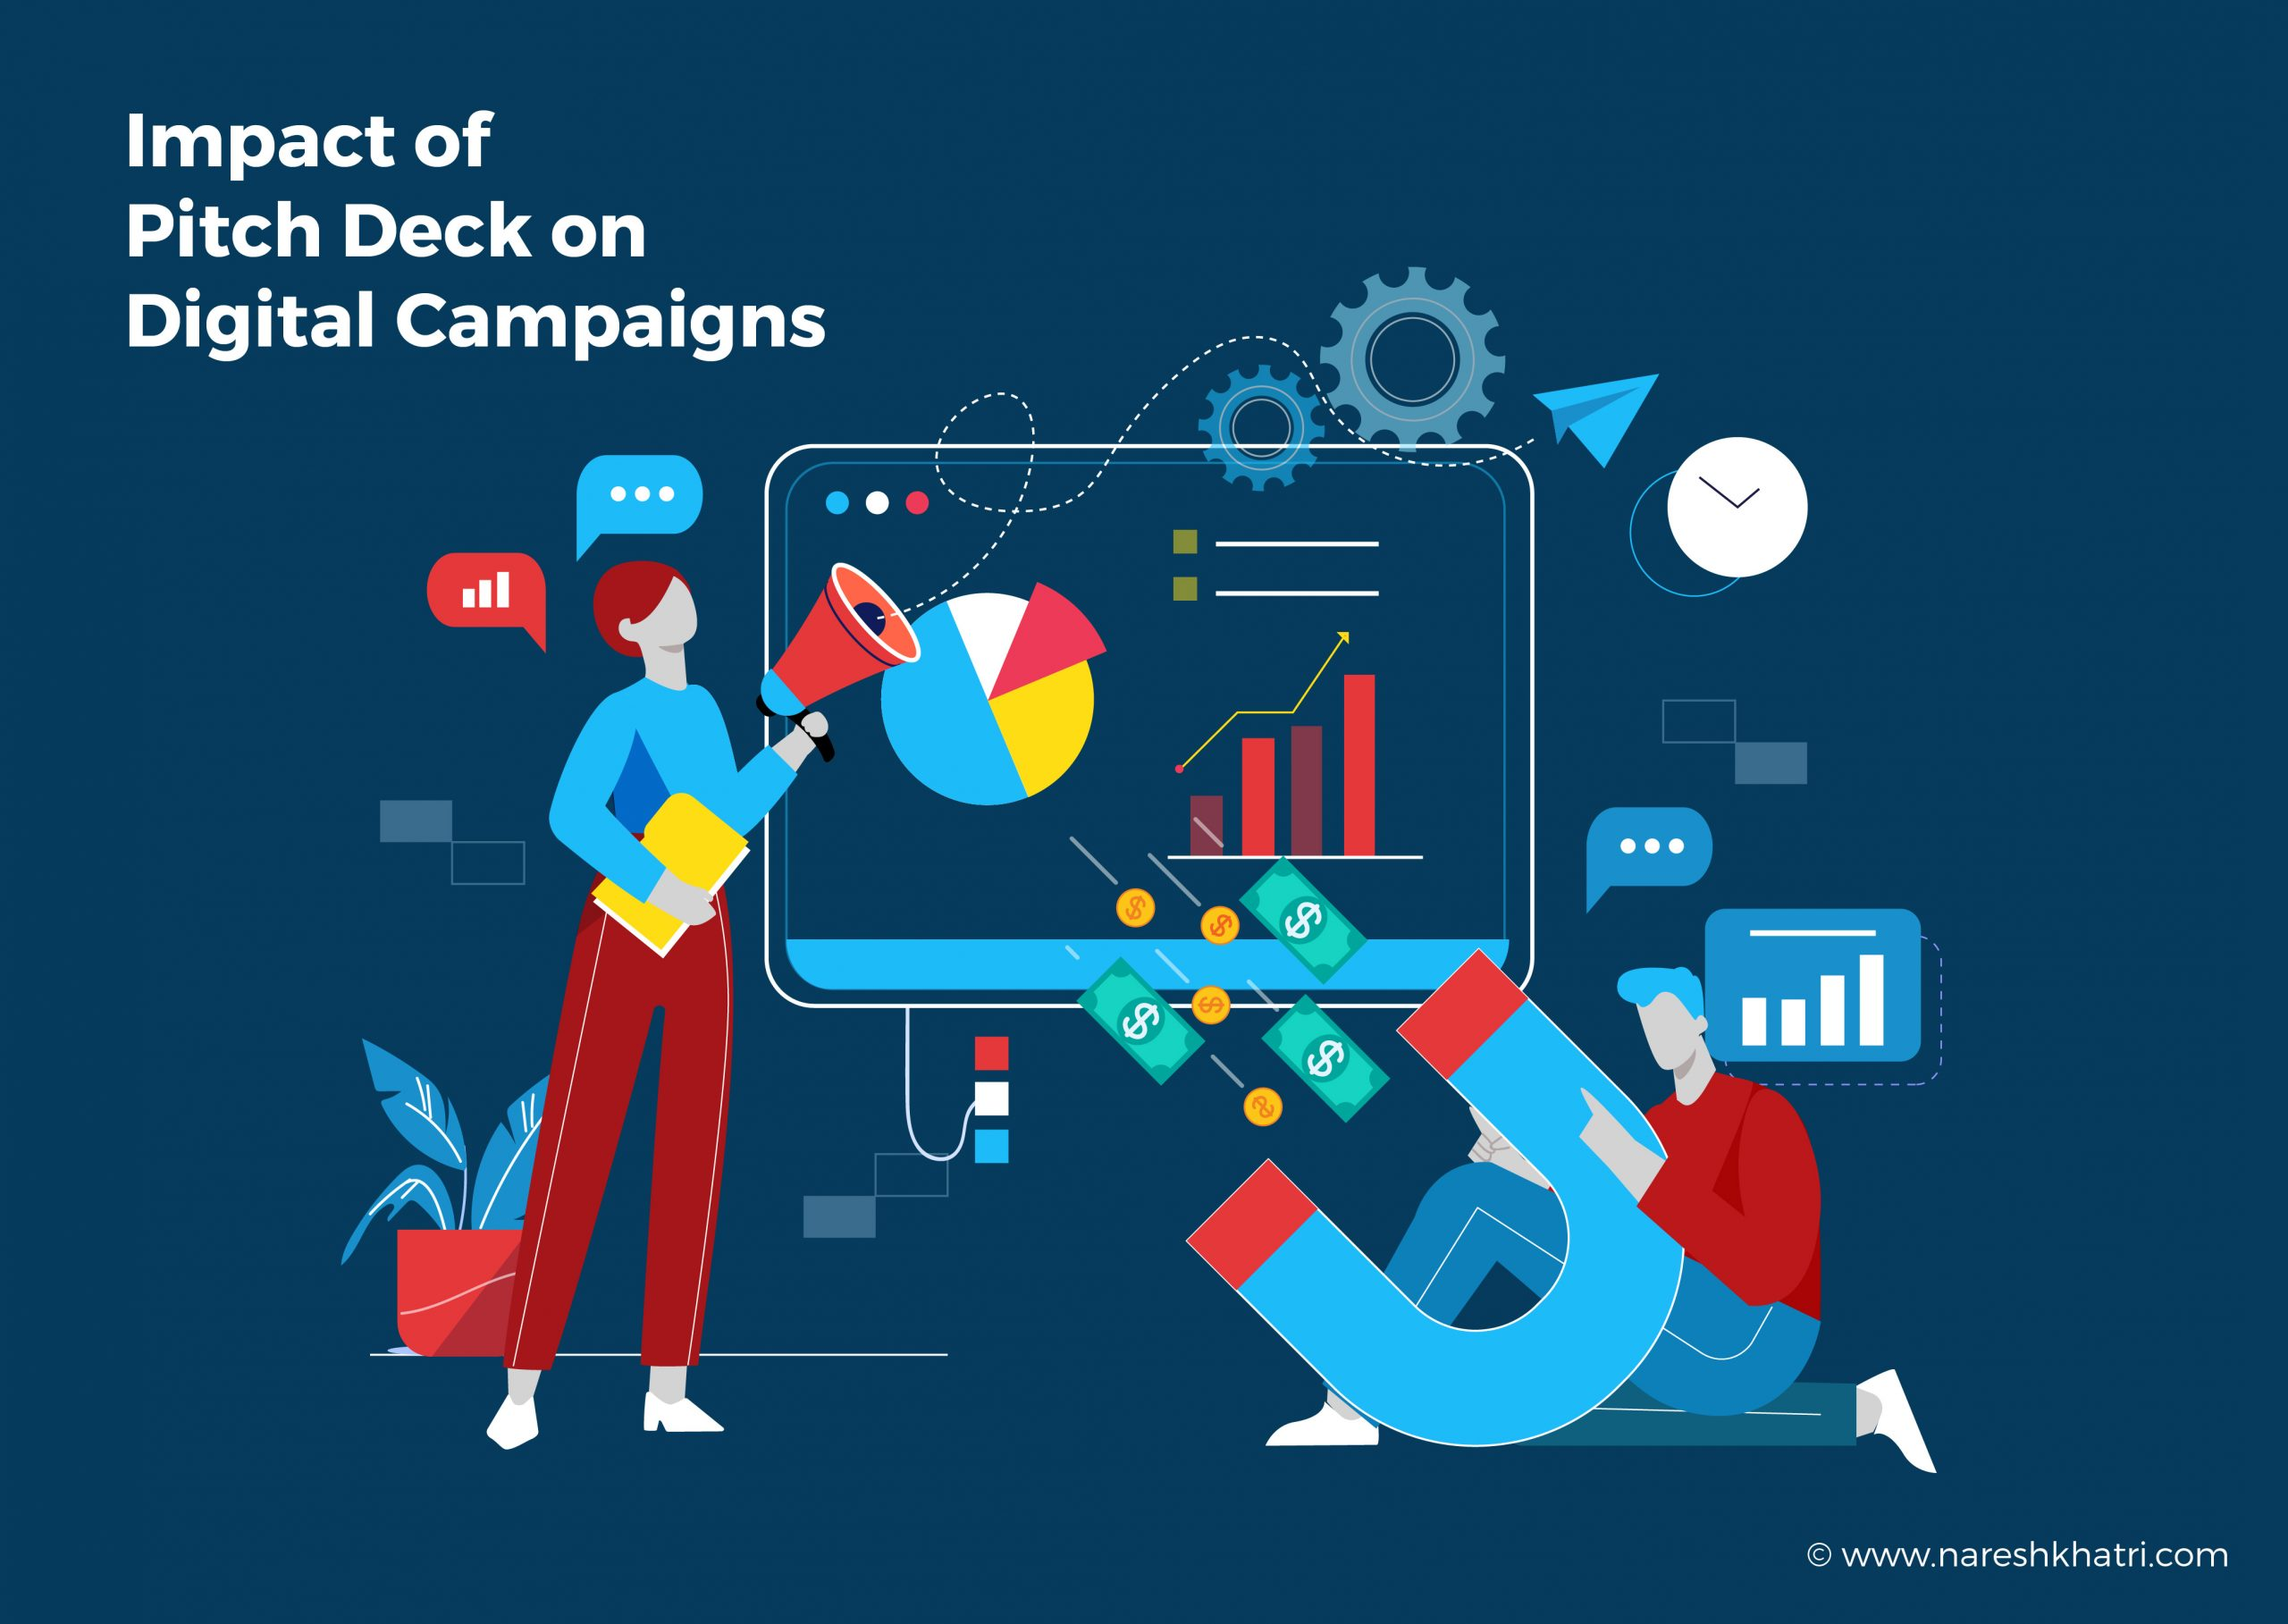 Impact of Pitch Deck on Digital Campaigns